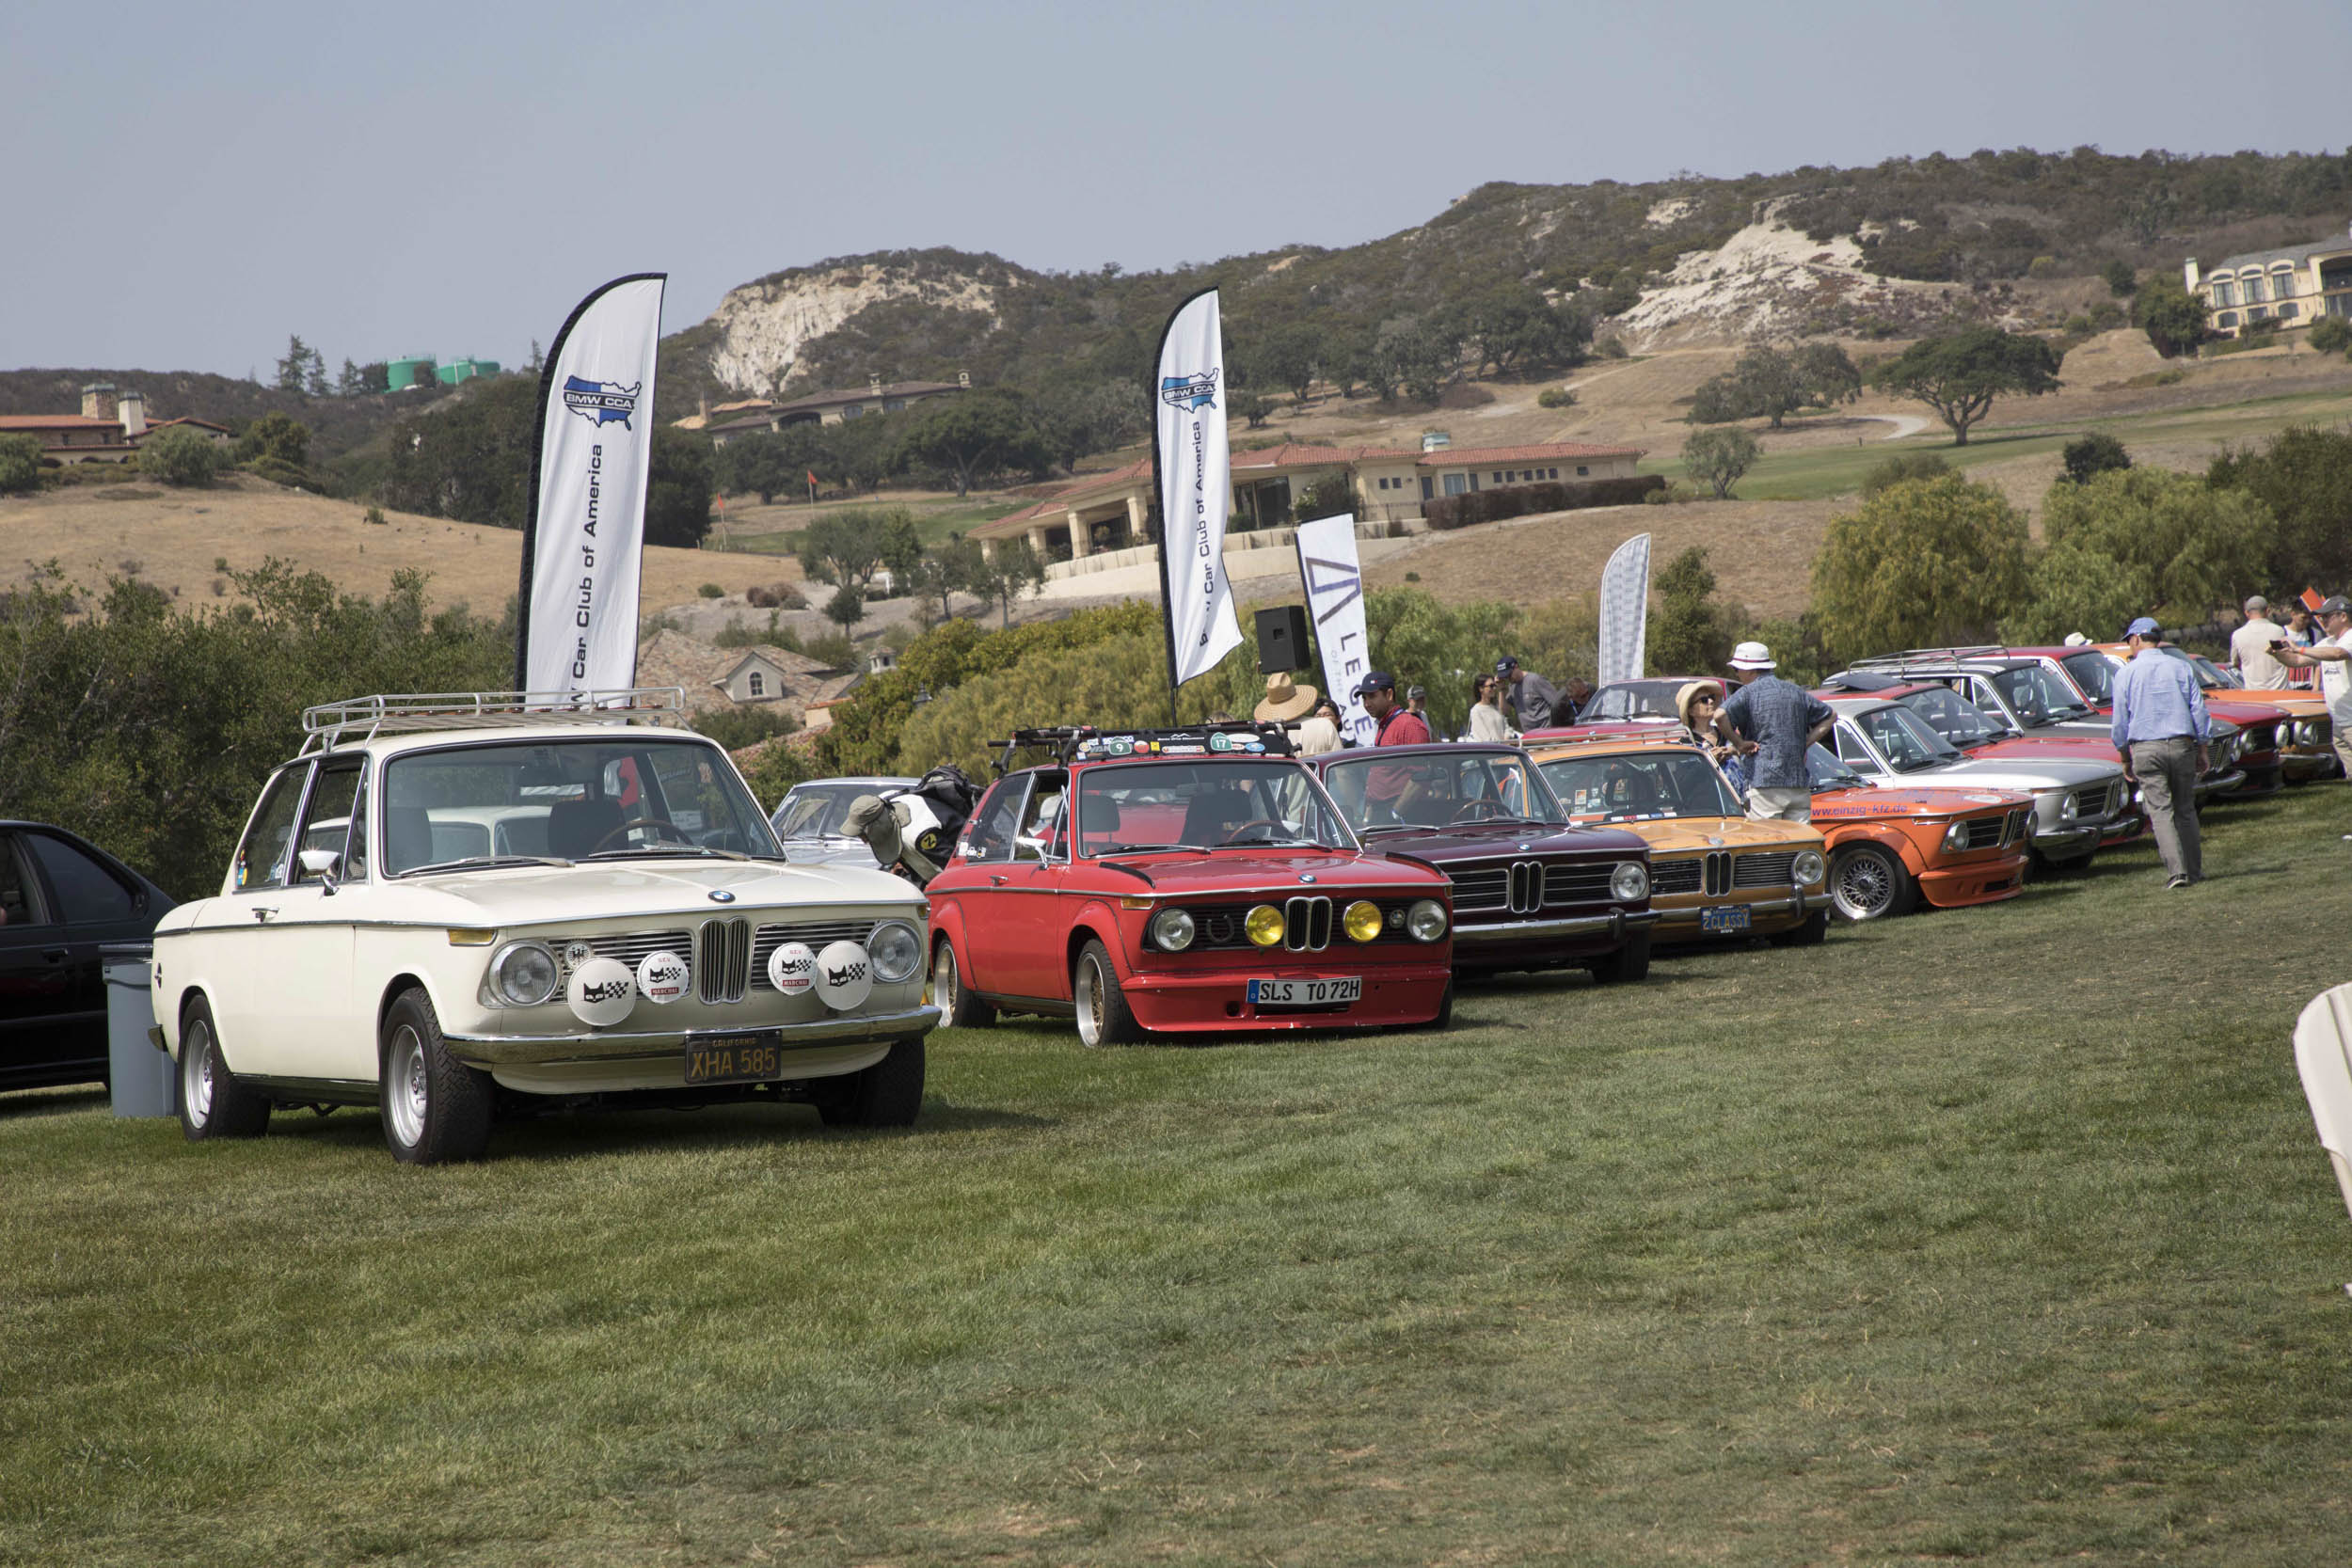 To celebrate the 50th anniversary of the BMW 2002, dozens of examples of the famous sedan, in stock and highly modified forms, ringed the show field at Legends of the Autobahn. The Hagerty People's Choice Award went to a 1971 2000tii Touring owned by Kaelin Thompson, a Legends veteran who drove up from San Diego.